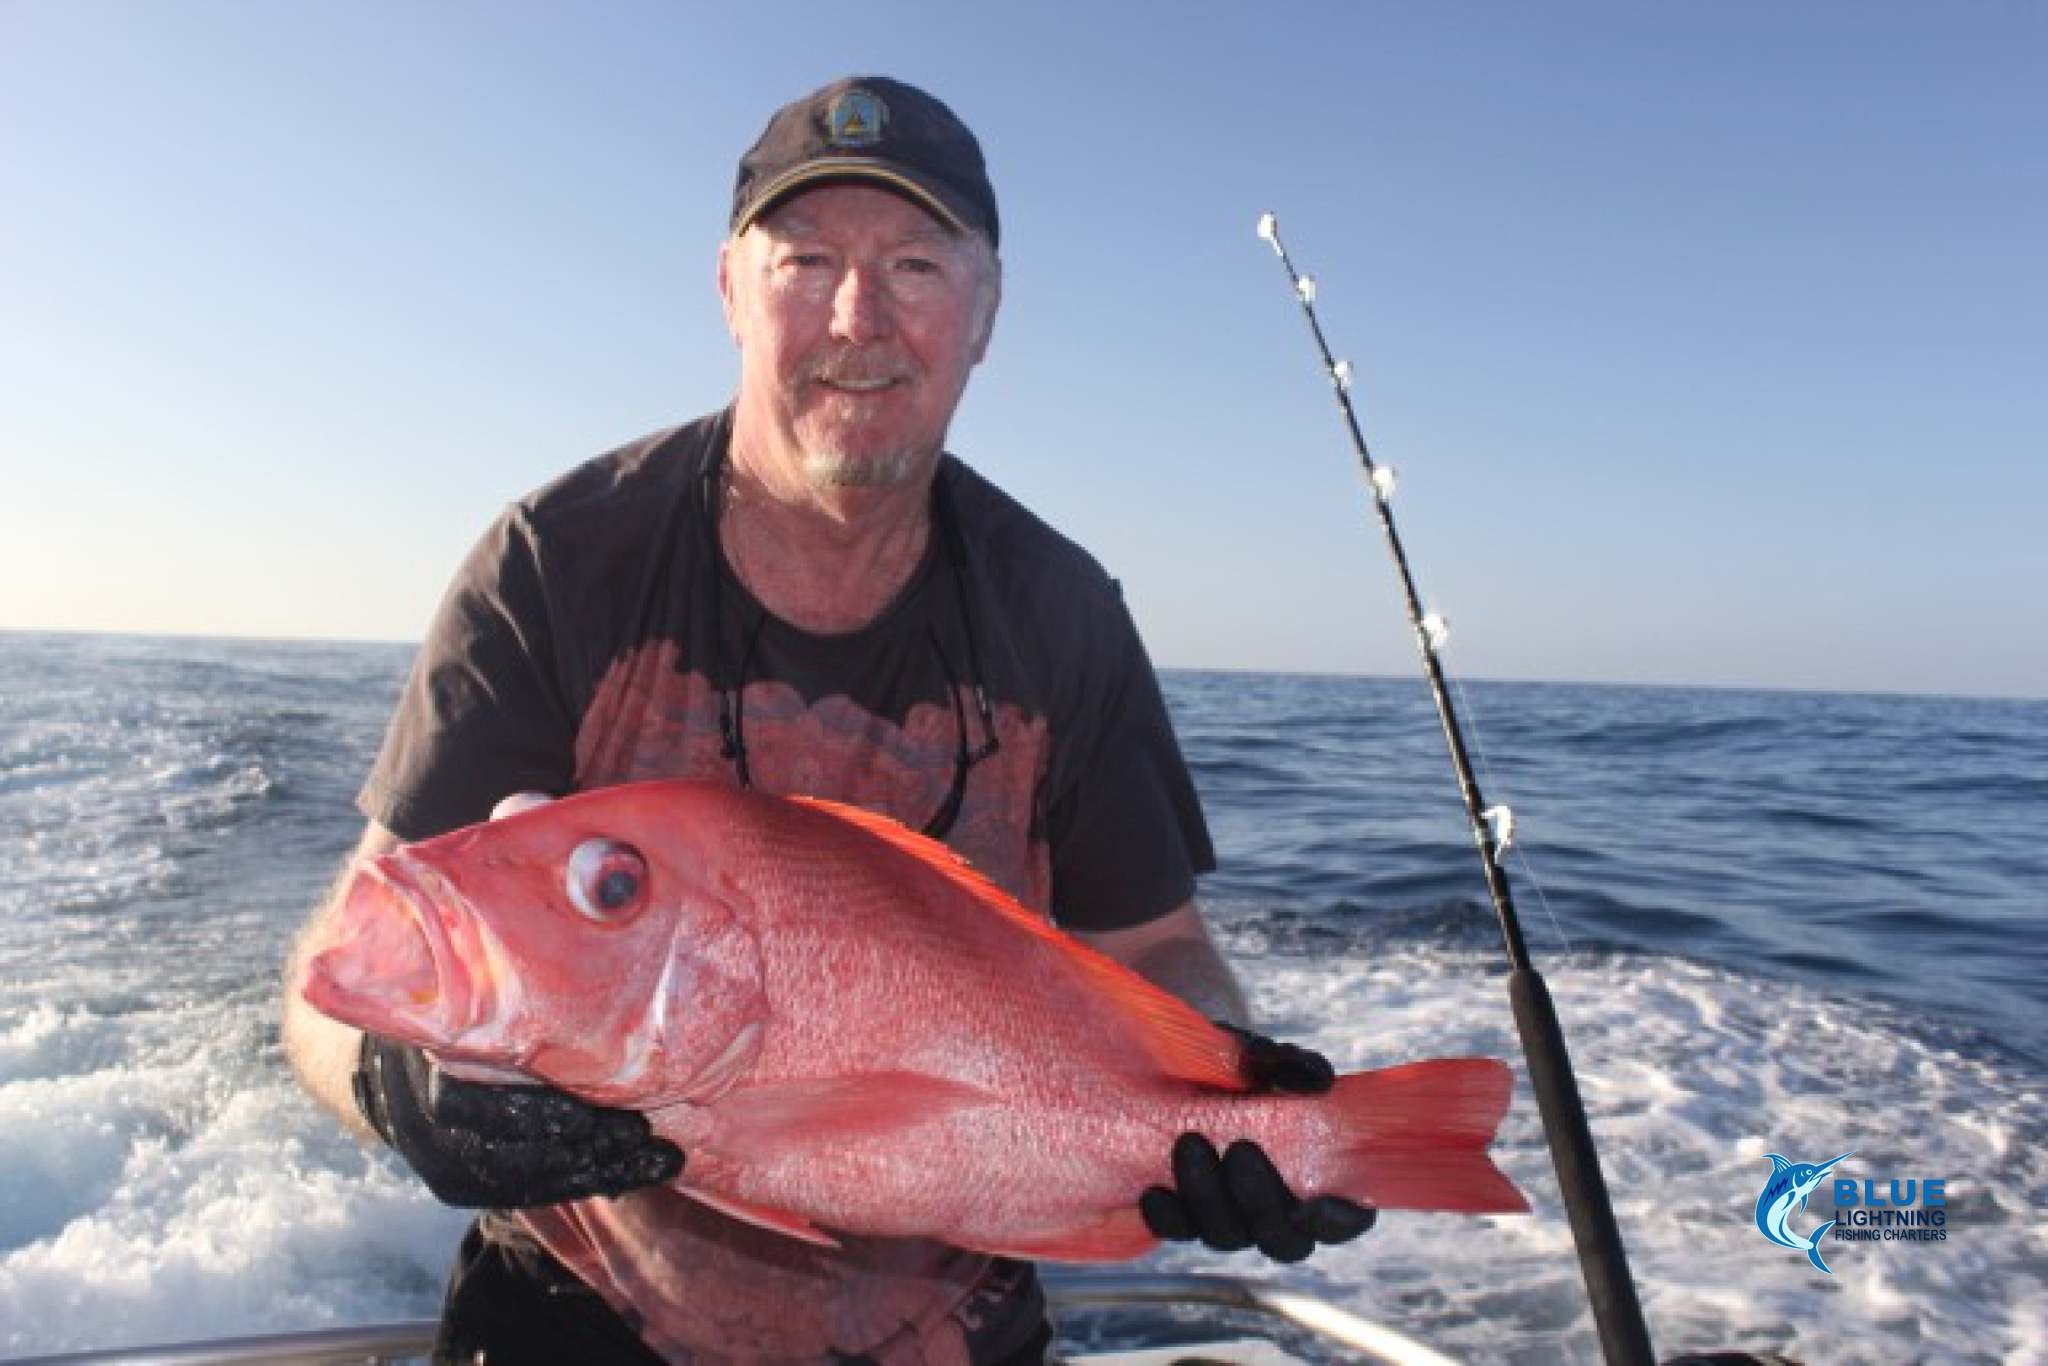 Peter scarlet sea perch blue lightning fishing charters for Sea perch fish